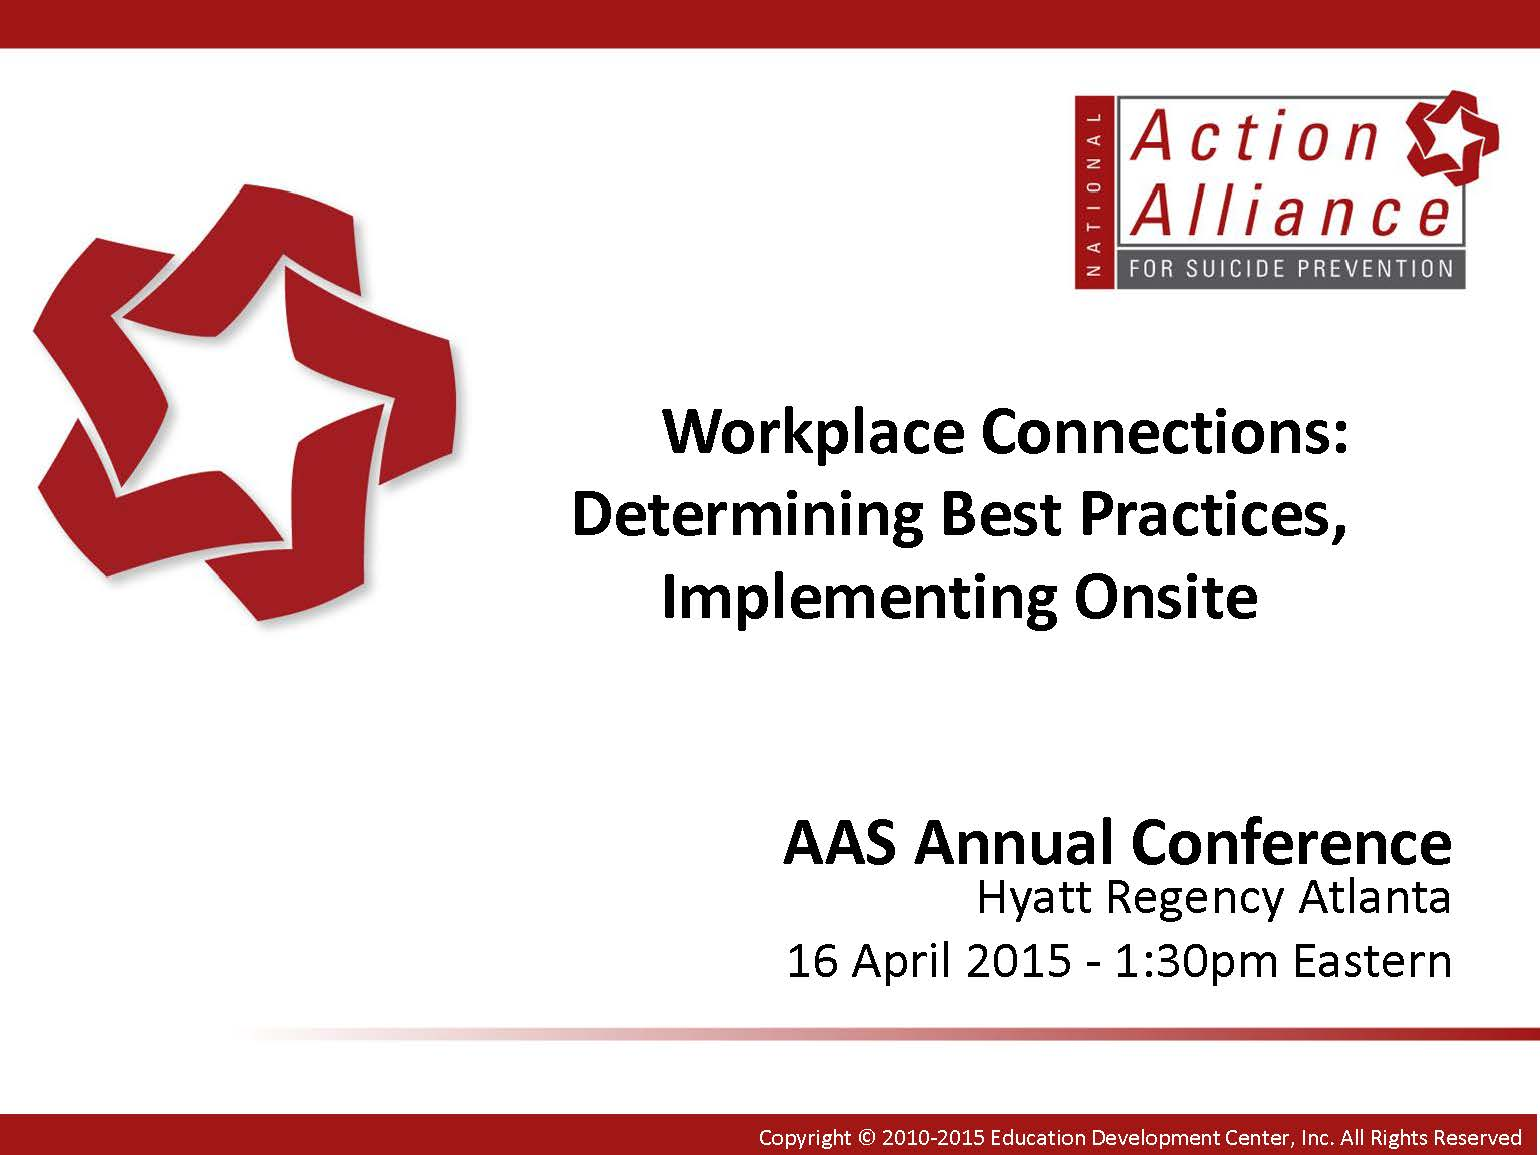 Workplace Connections: Determining Best Practices, Implementing Onsite